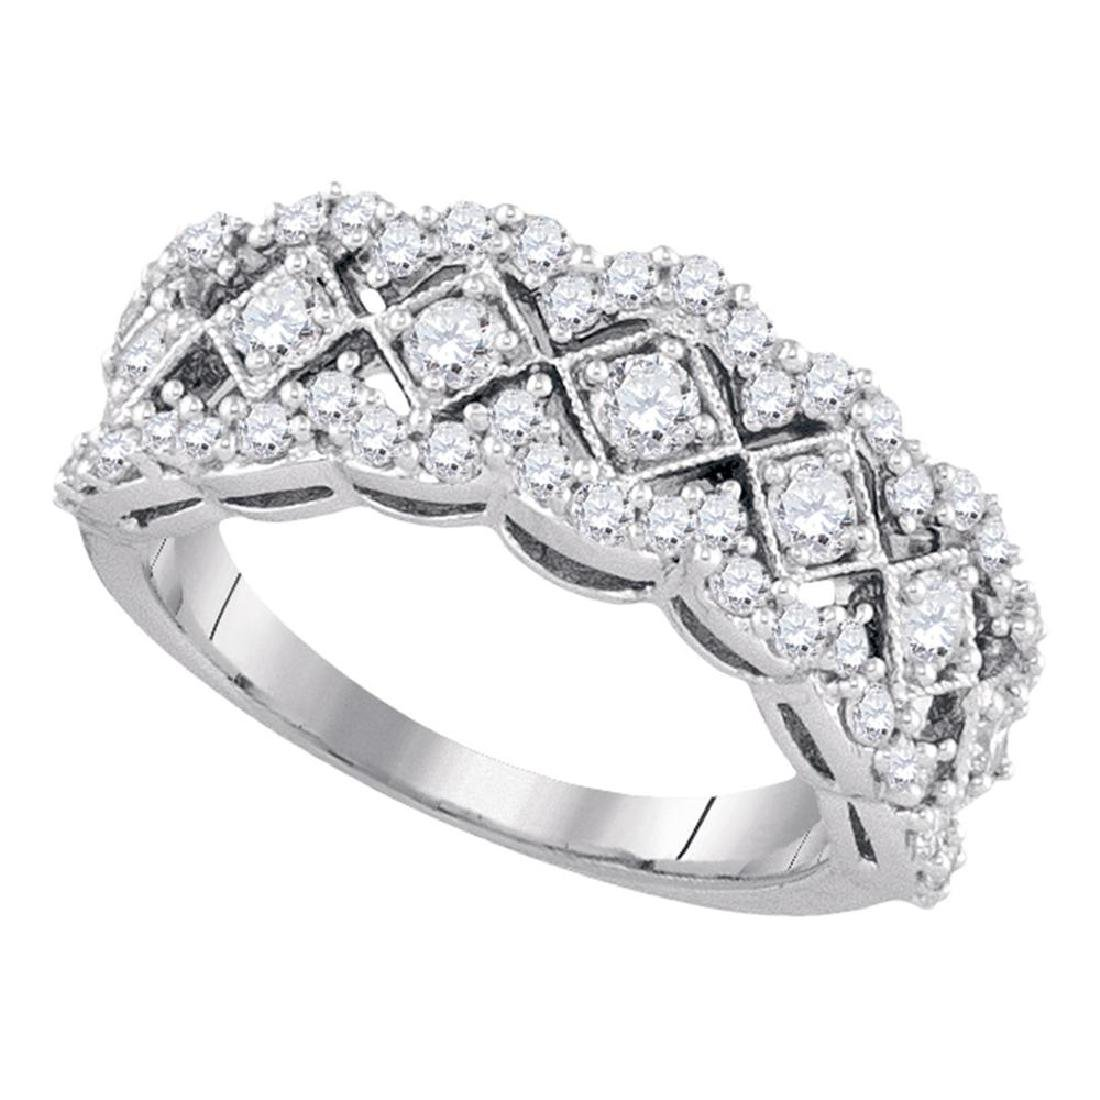 1.01 CTW Diamond Diagonal Square Ring 14KT White Gold -